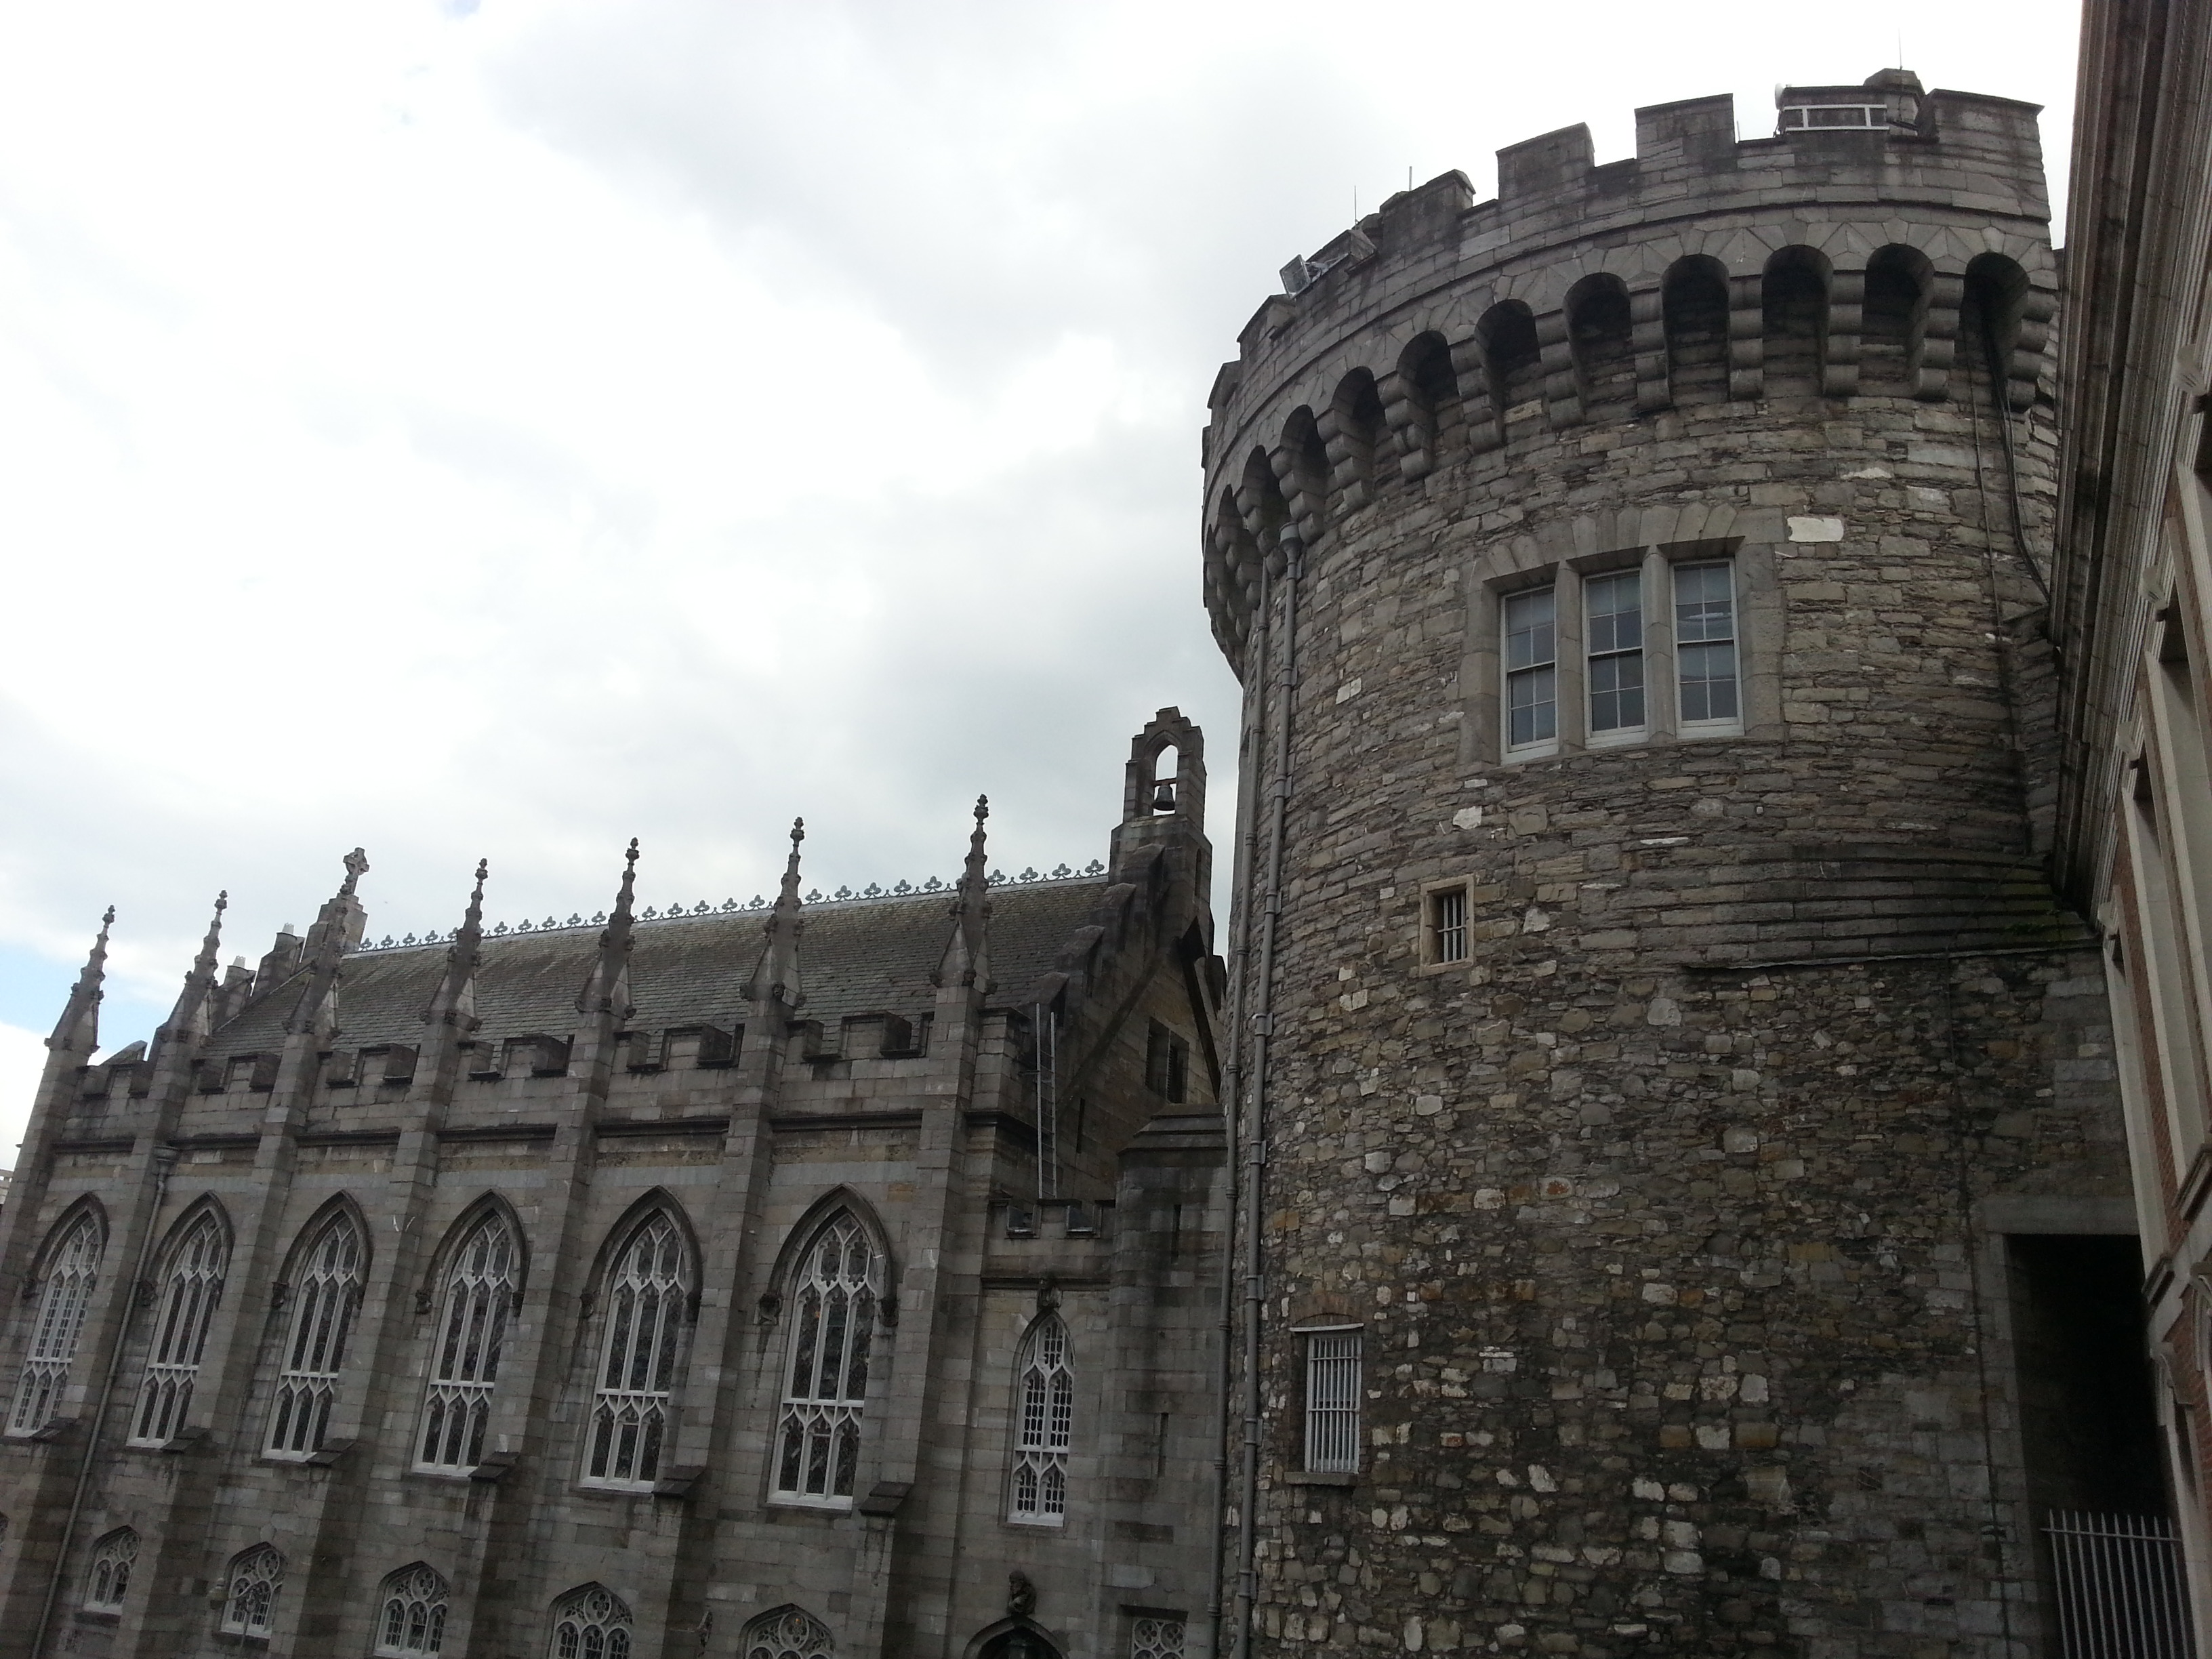 The Chapel Royal, and the Record Tower, the only part of the Dublin castle surviving from medieval times, built in 1228